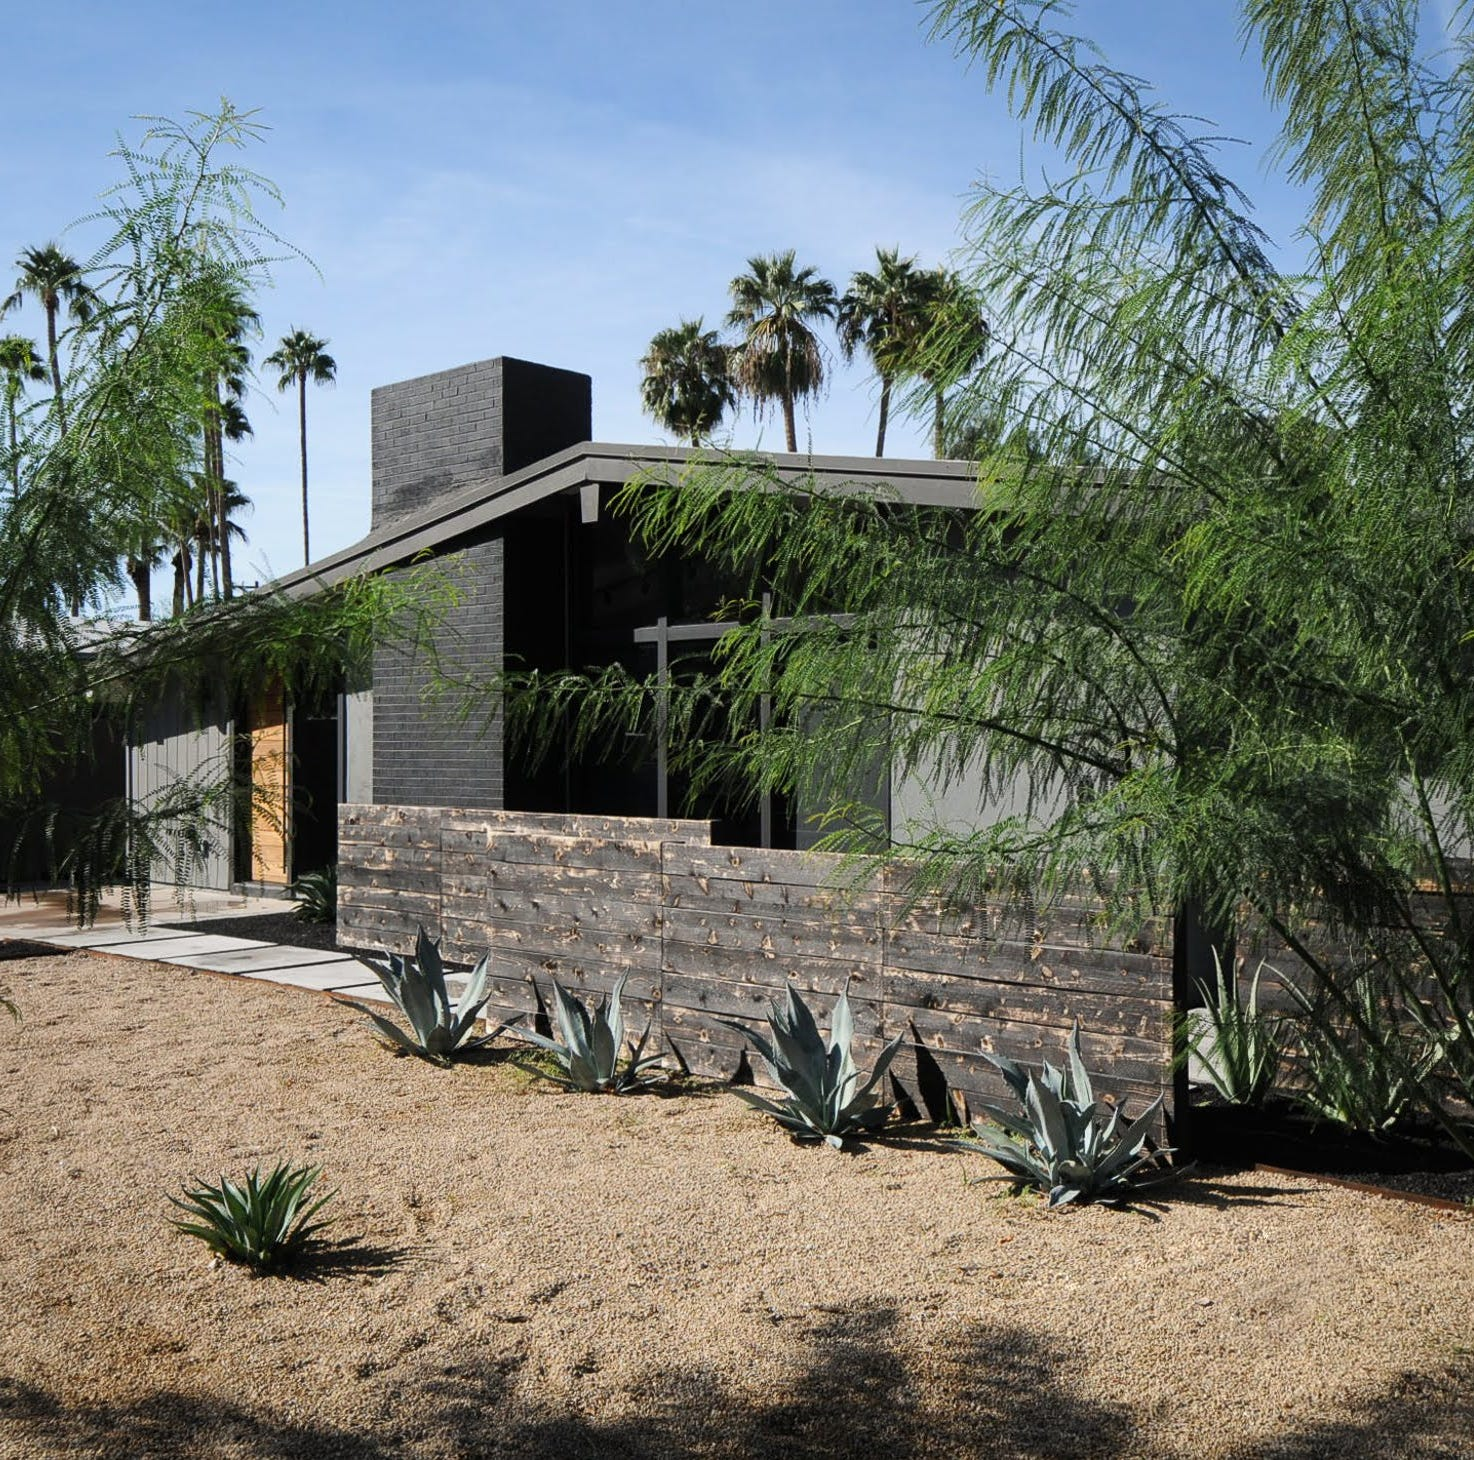 Arcadia couple renovates Ralph Haver home, melding its iconic style with theirs